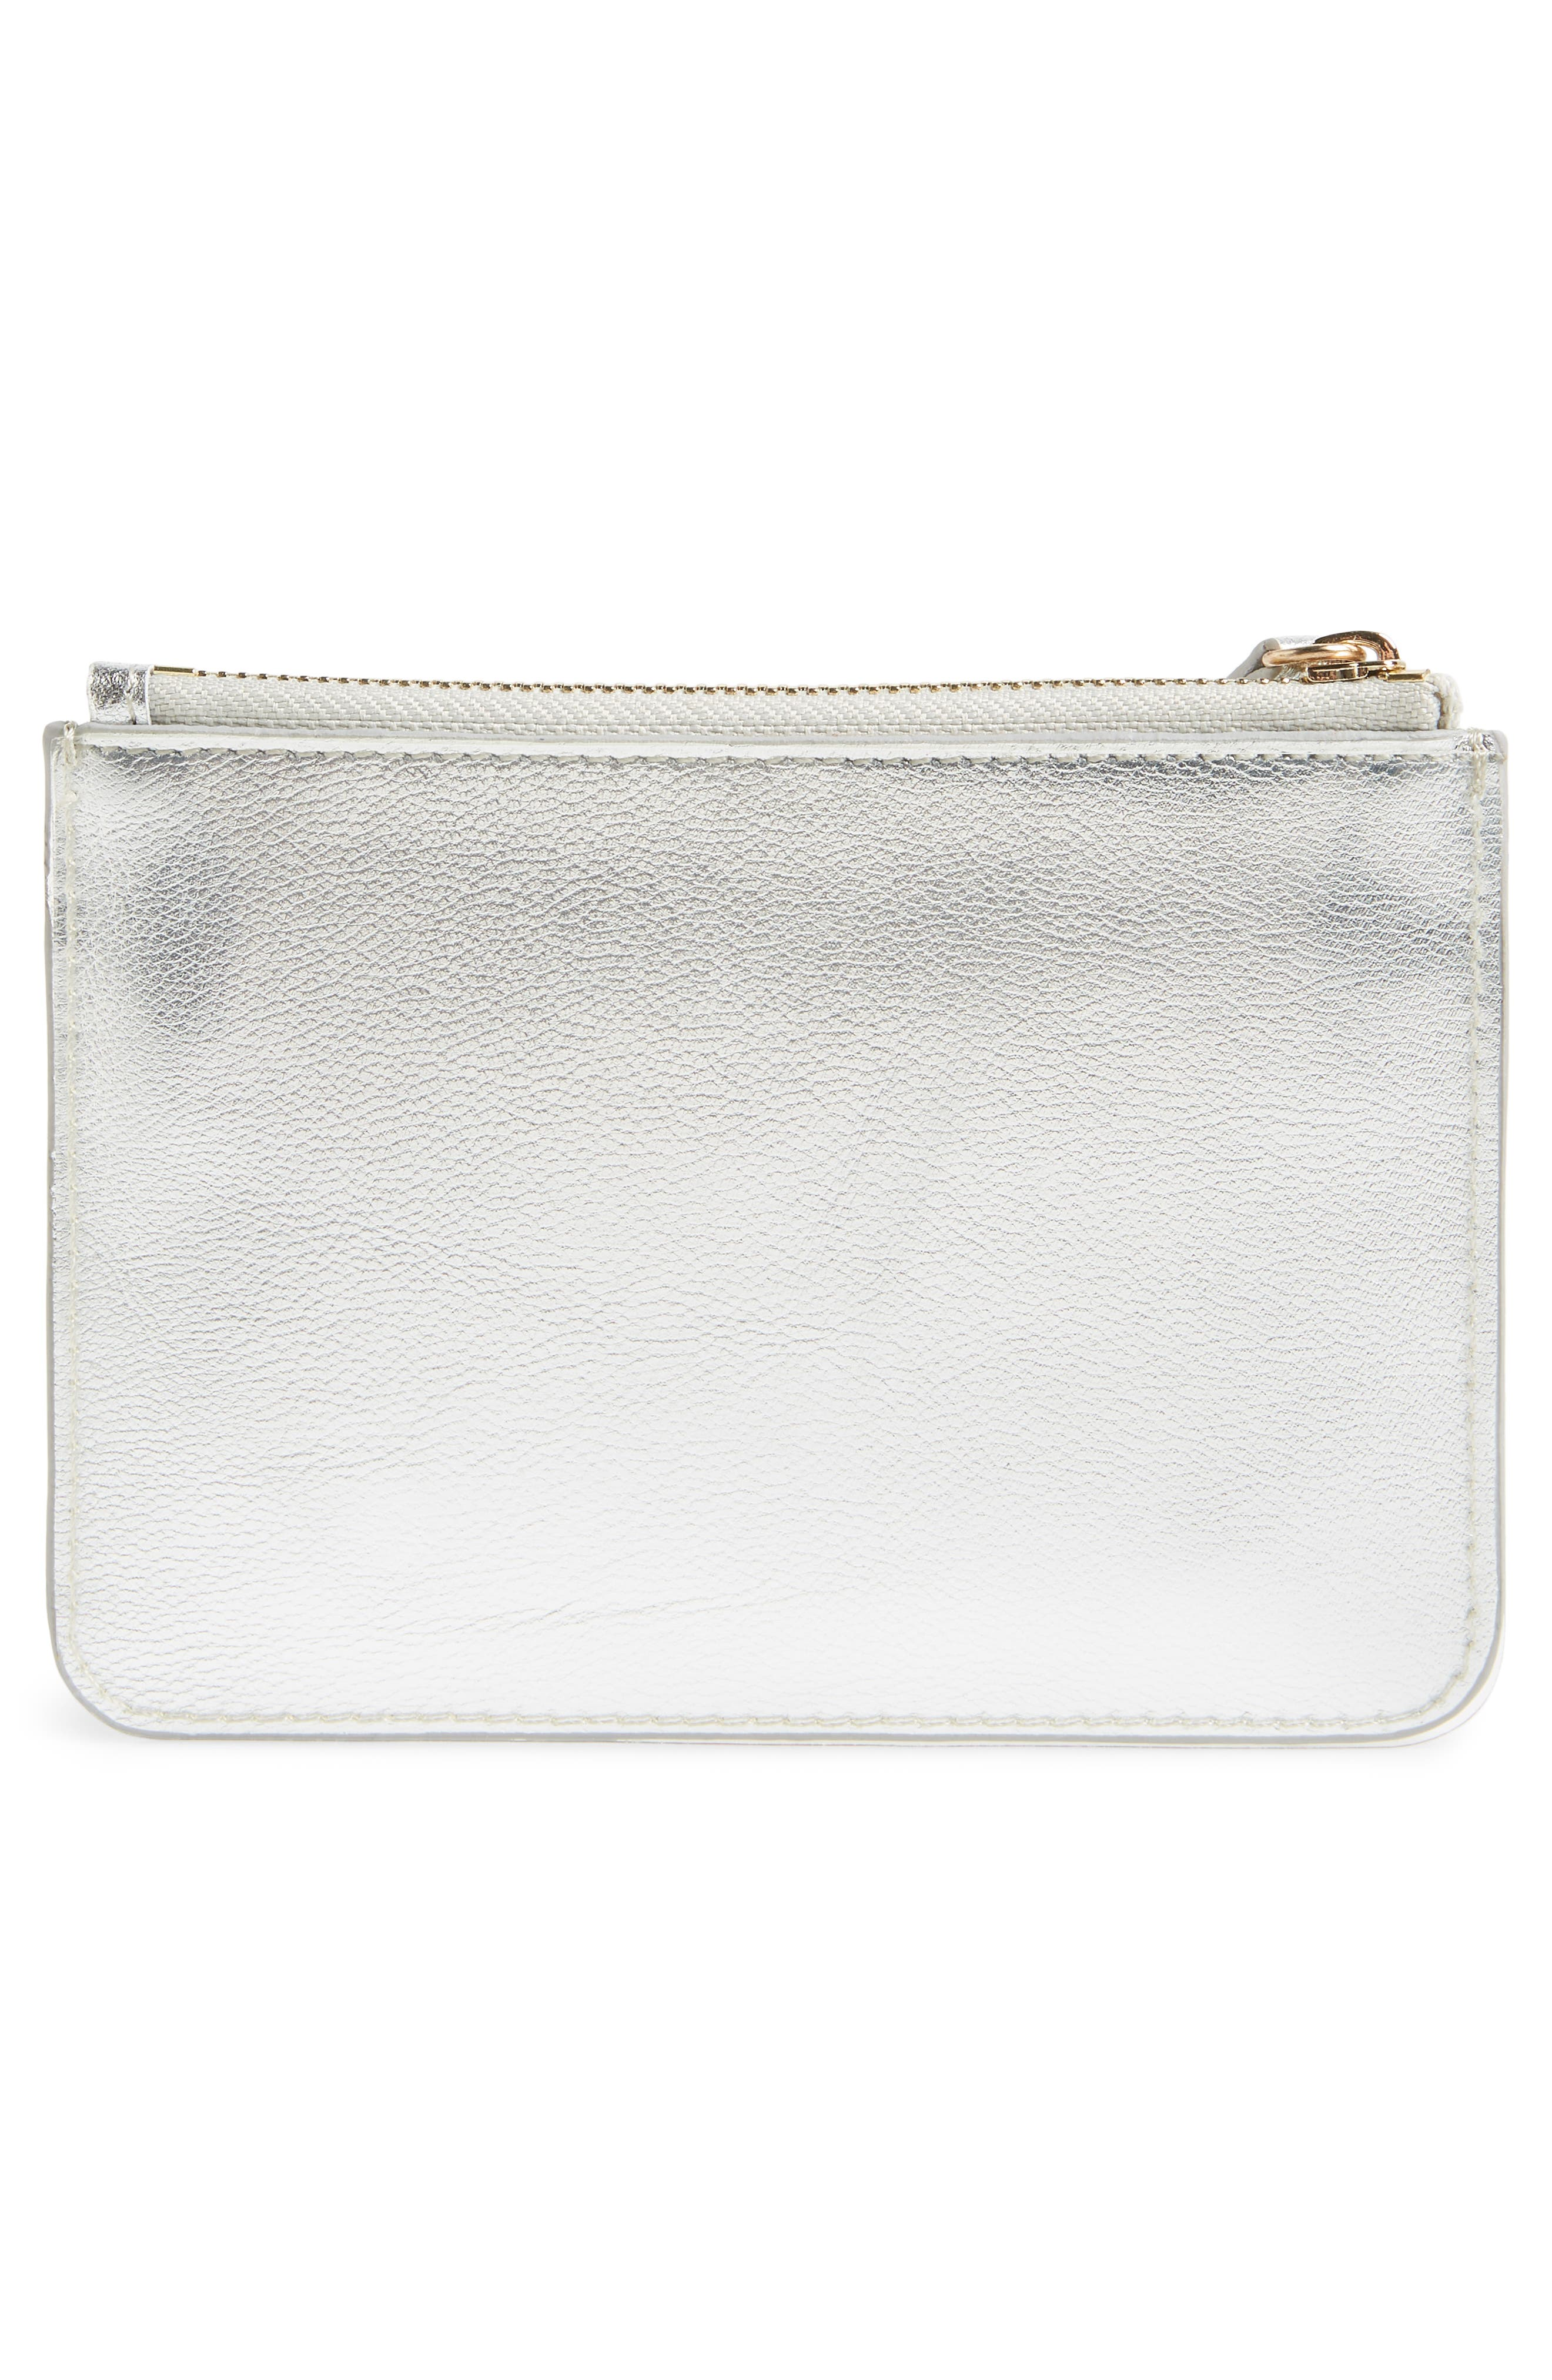 Privacy Leather Coin Pouch,                             Alternate thumbnail 4, color,                             SILVER